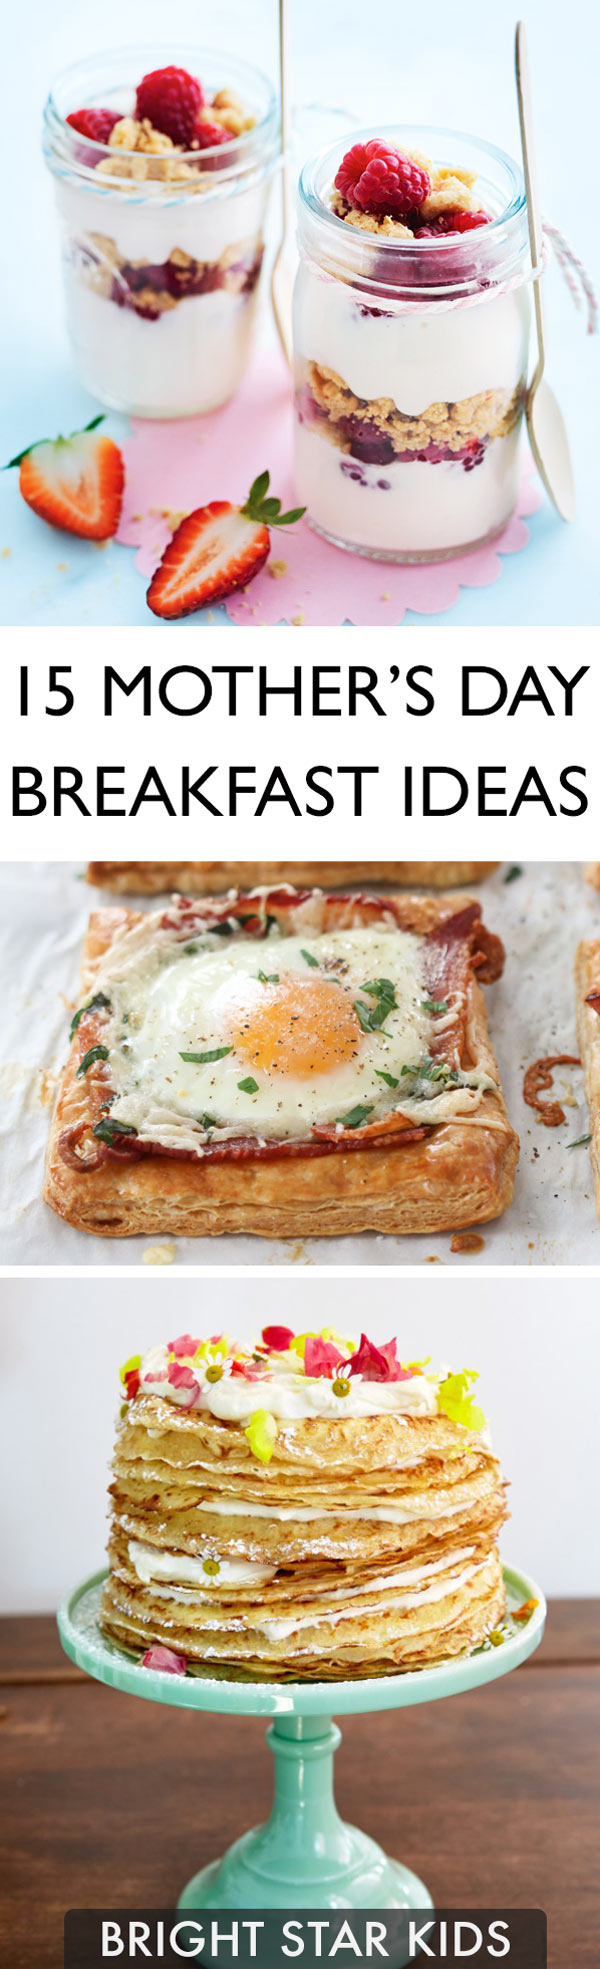 Mother's Day Breakfast or Brunch Ideas